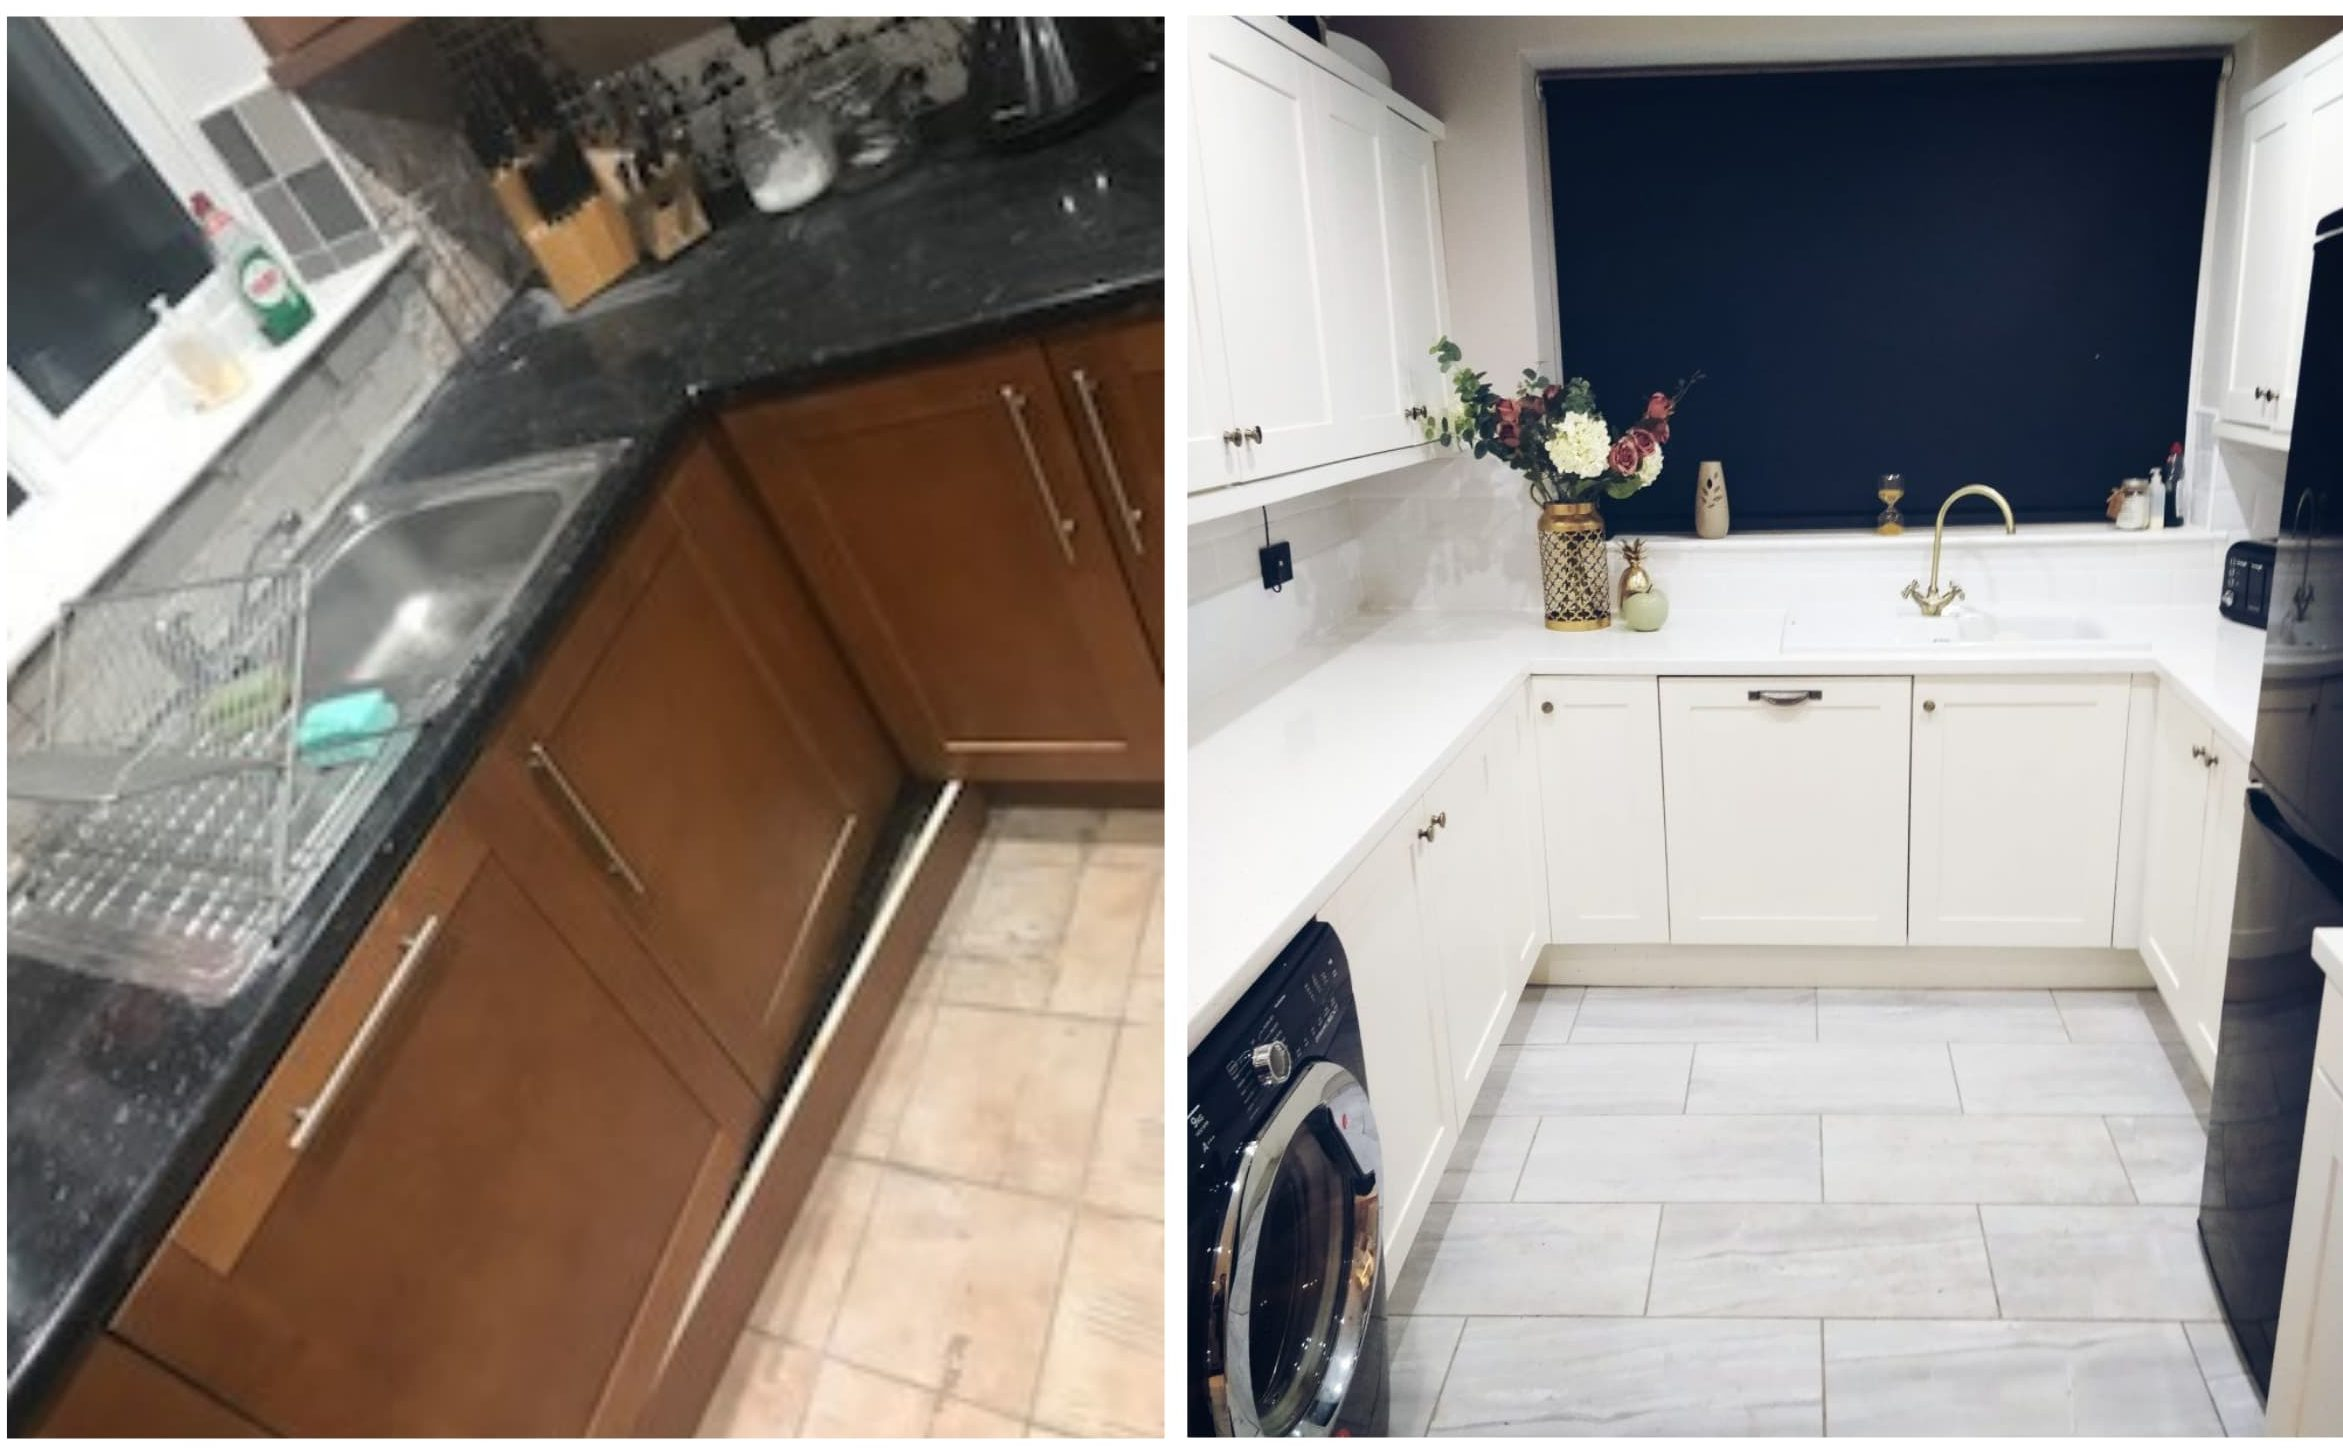 this is a before and after from jackie's kitchen upcycling project